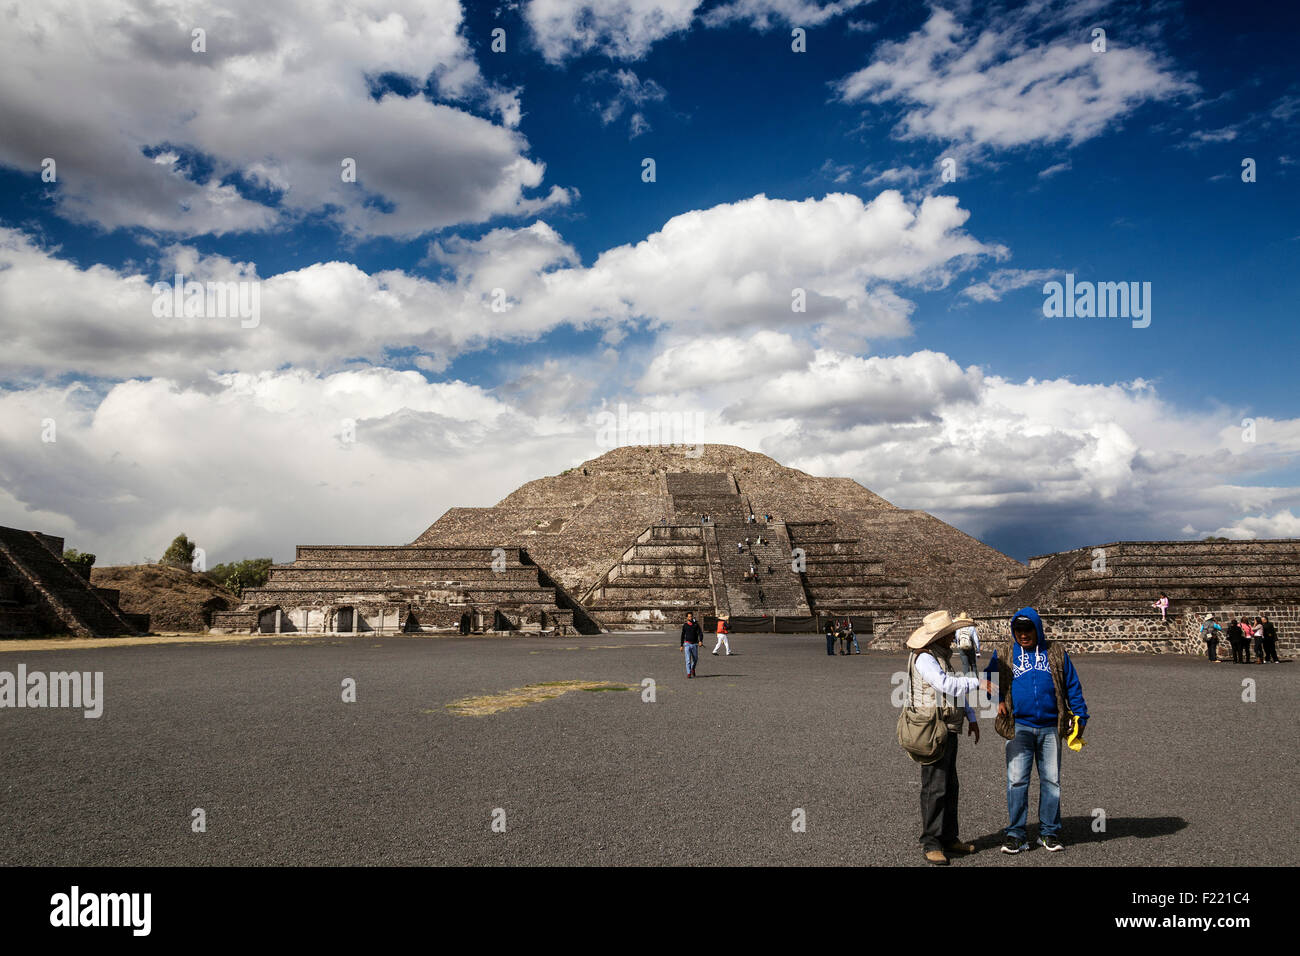 Pyramid of the Moon Teotihuacan archaeological site Unesco World Heritage Site Mexico America - Stock Image